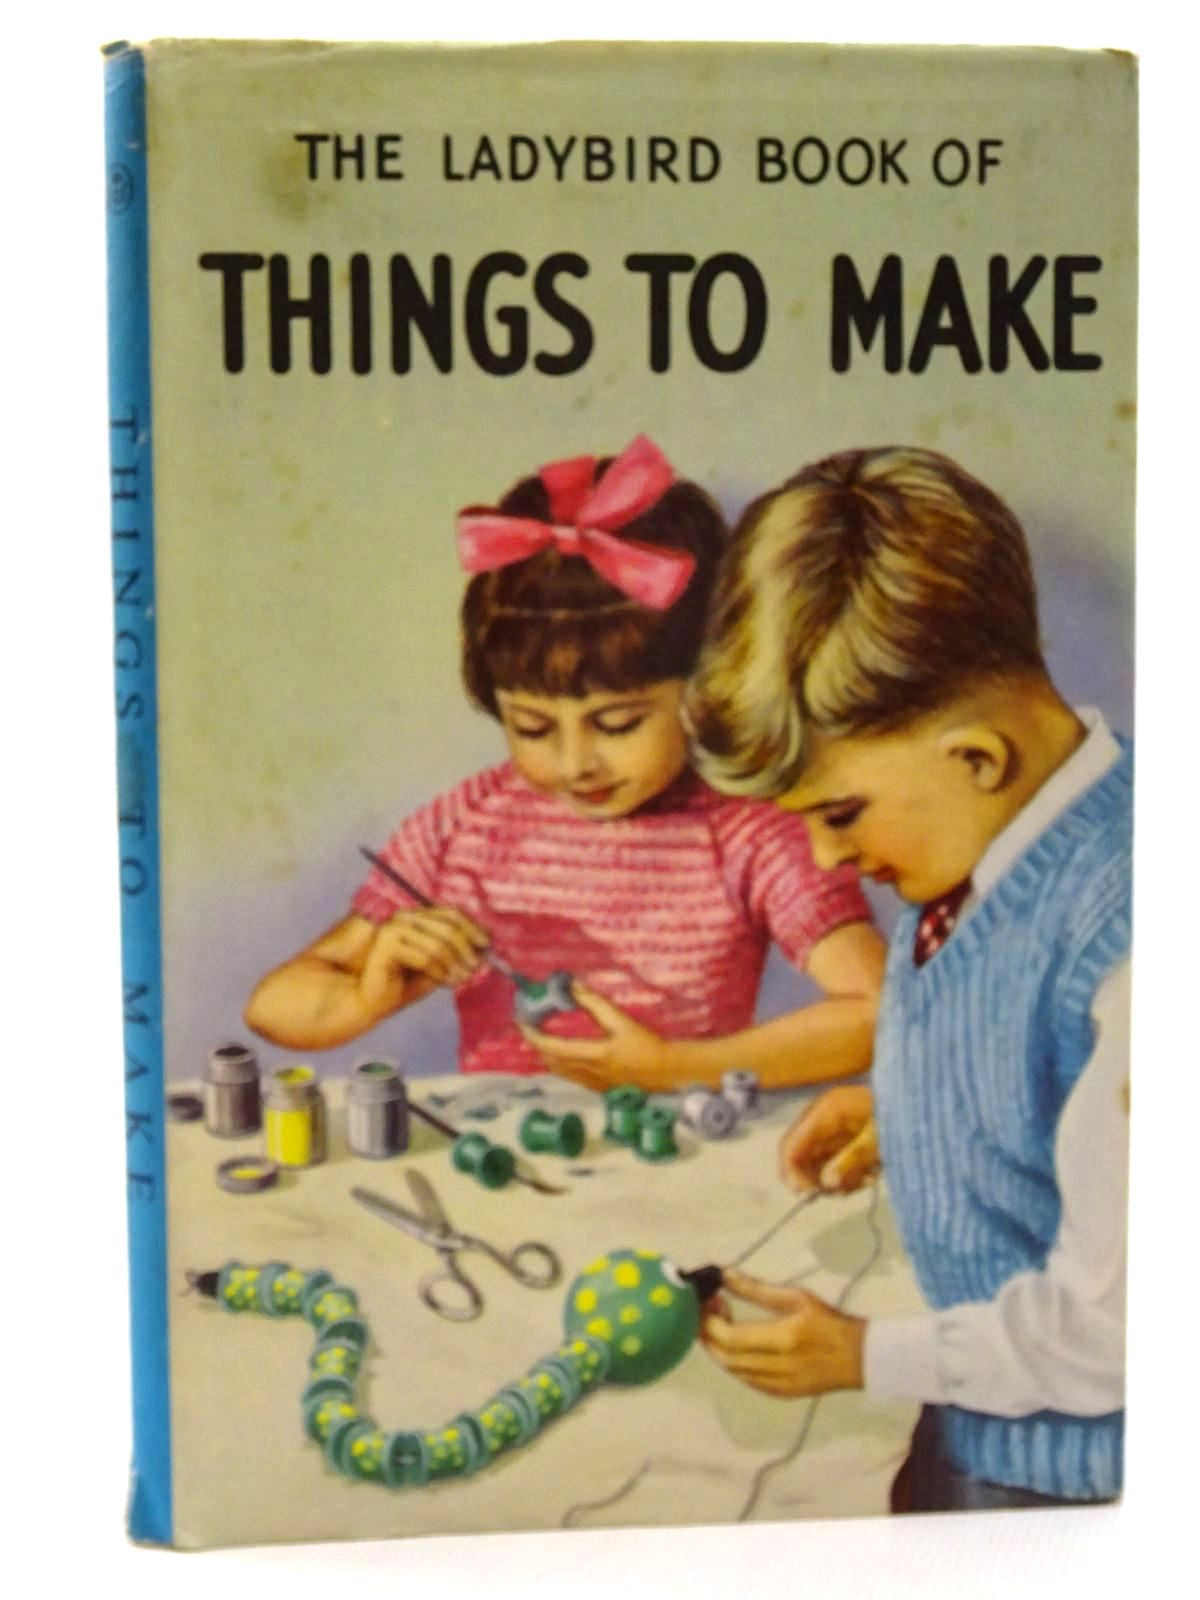 Photo of THE LADYBIRD BOOK OF THINGS TO MAKE written by Richey, Mia F. illustrated by Robinson, G. published by Wills & Hepworth Ltd. (STOCK CODE: 2125044)  for sale by Stella & Rose's Books